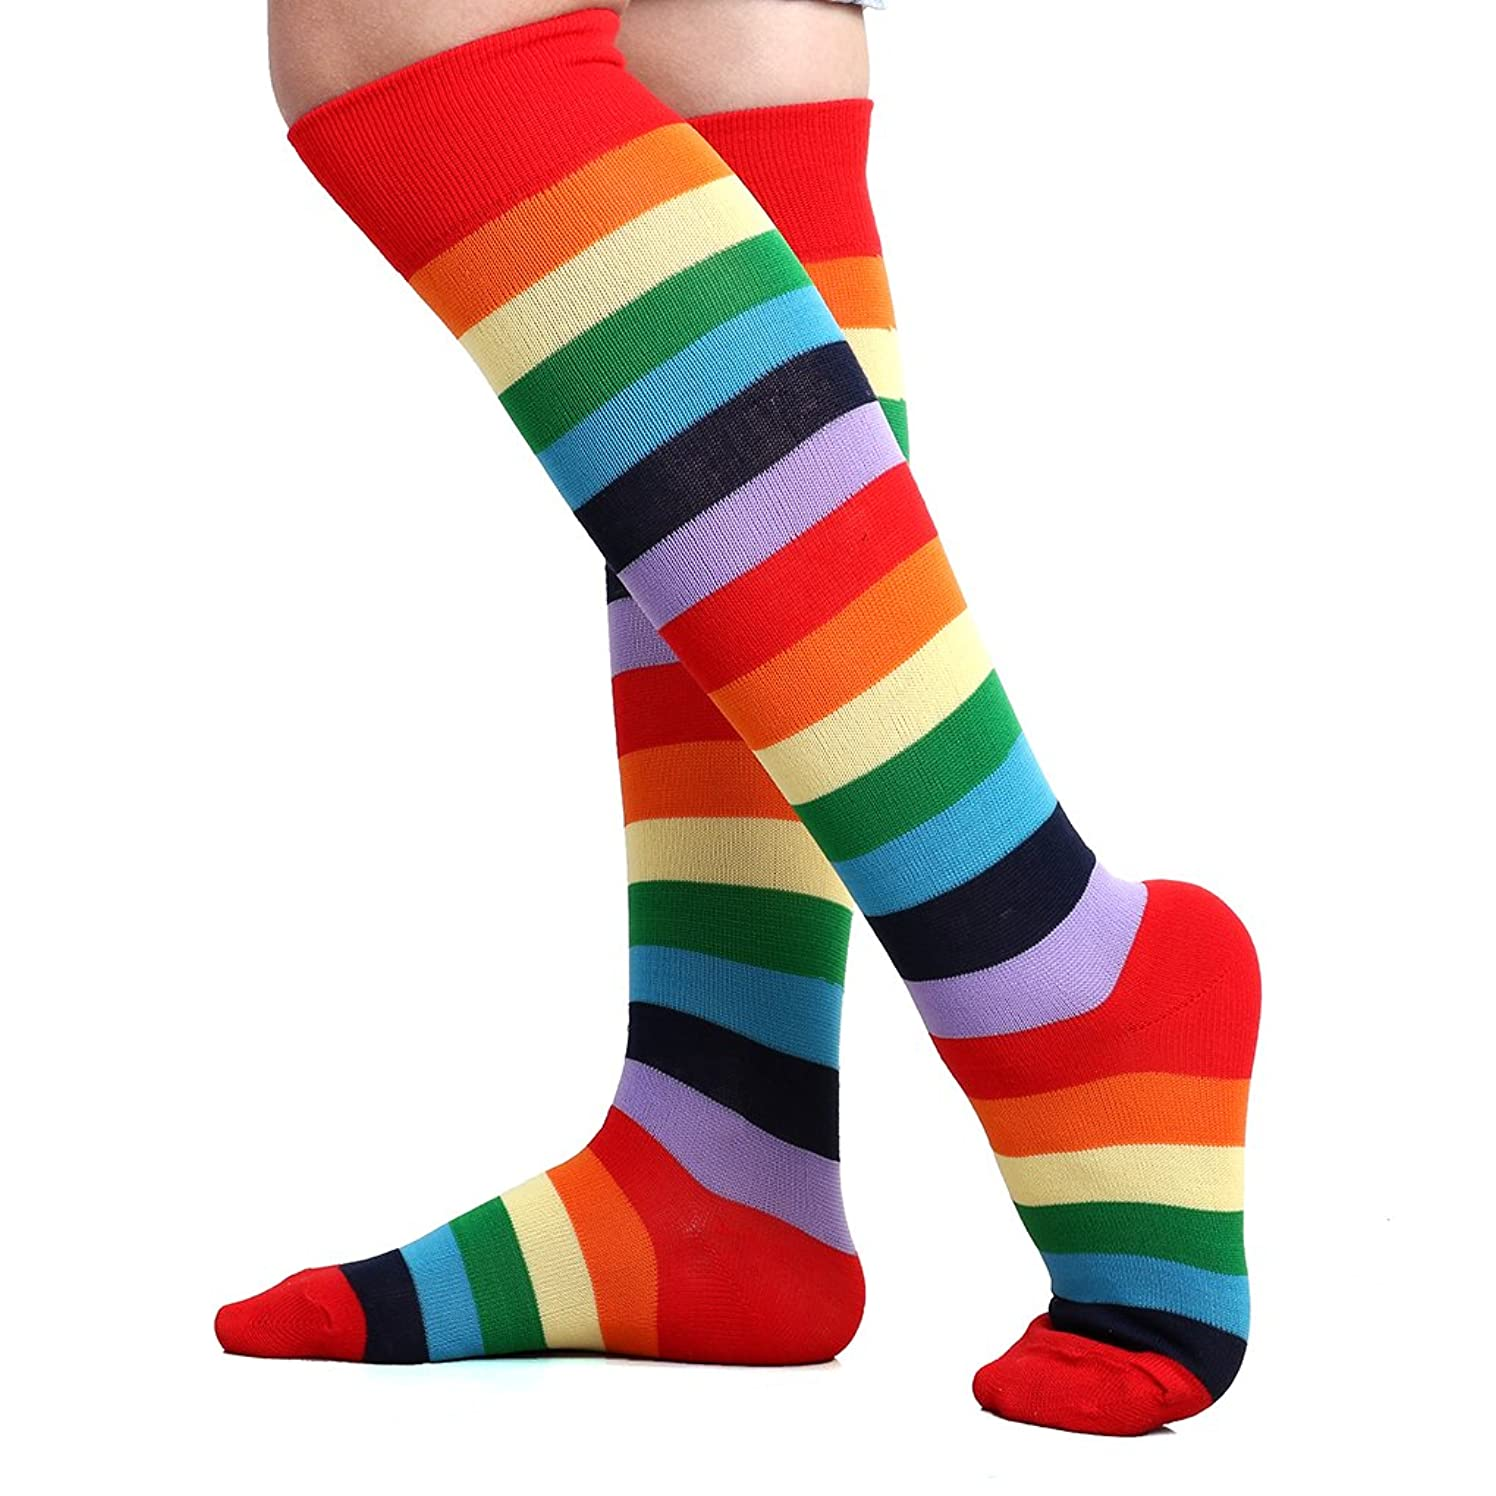 ELLITE Women Striped Stockings White Black Rainbow Athletic Soccer Tube Knee High Socks